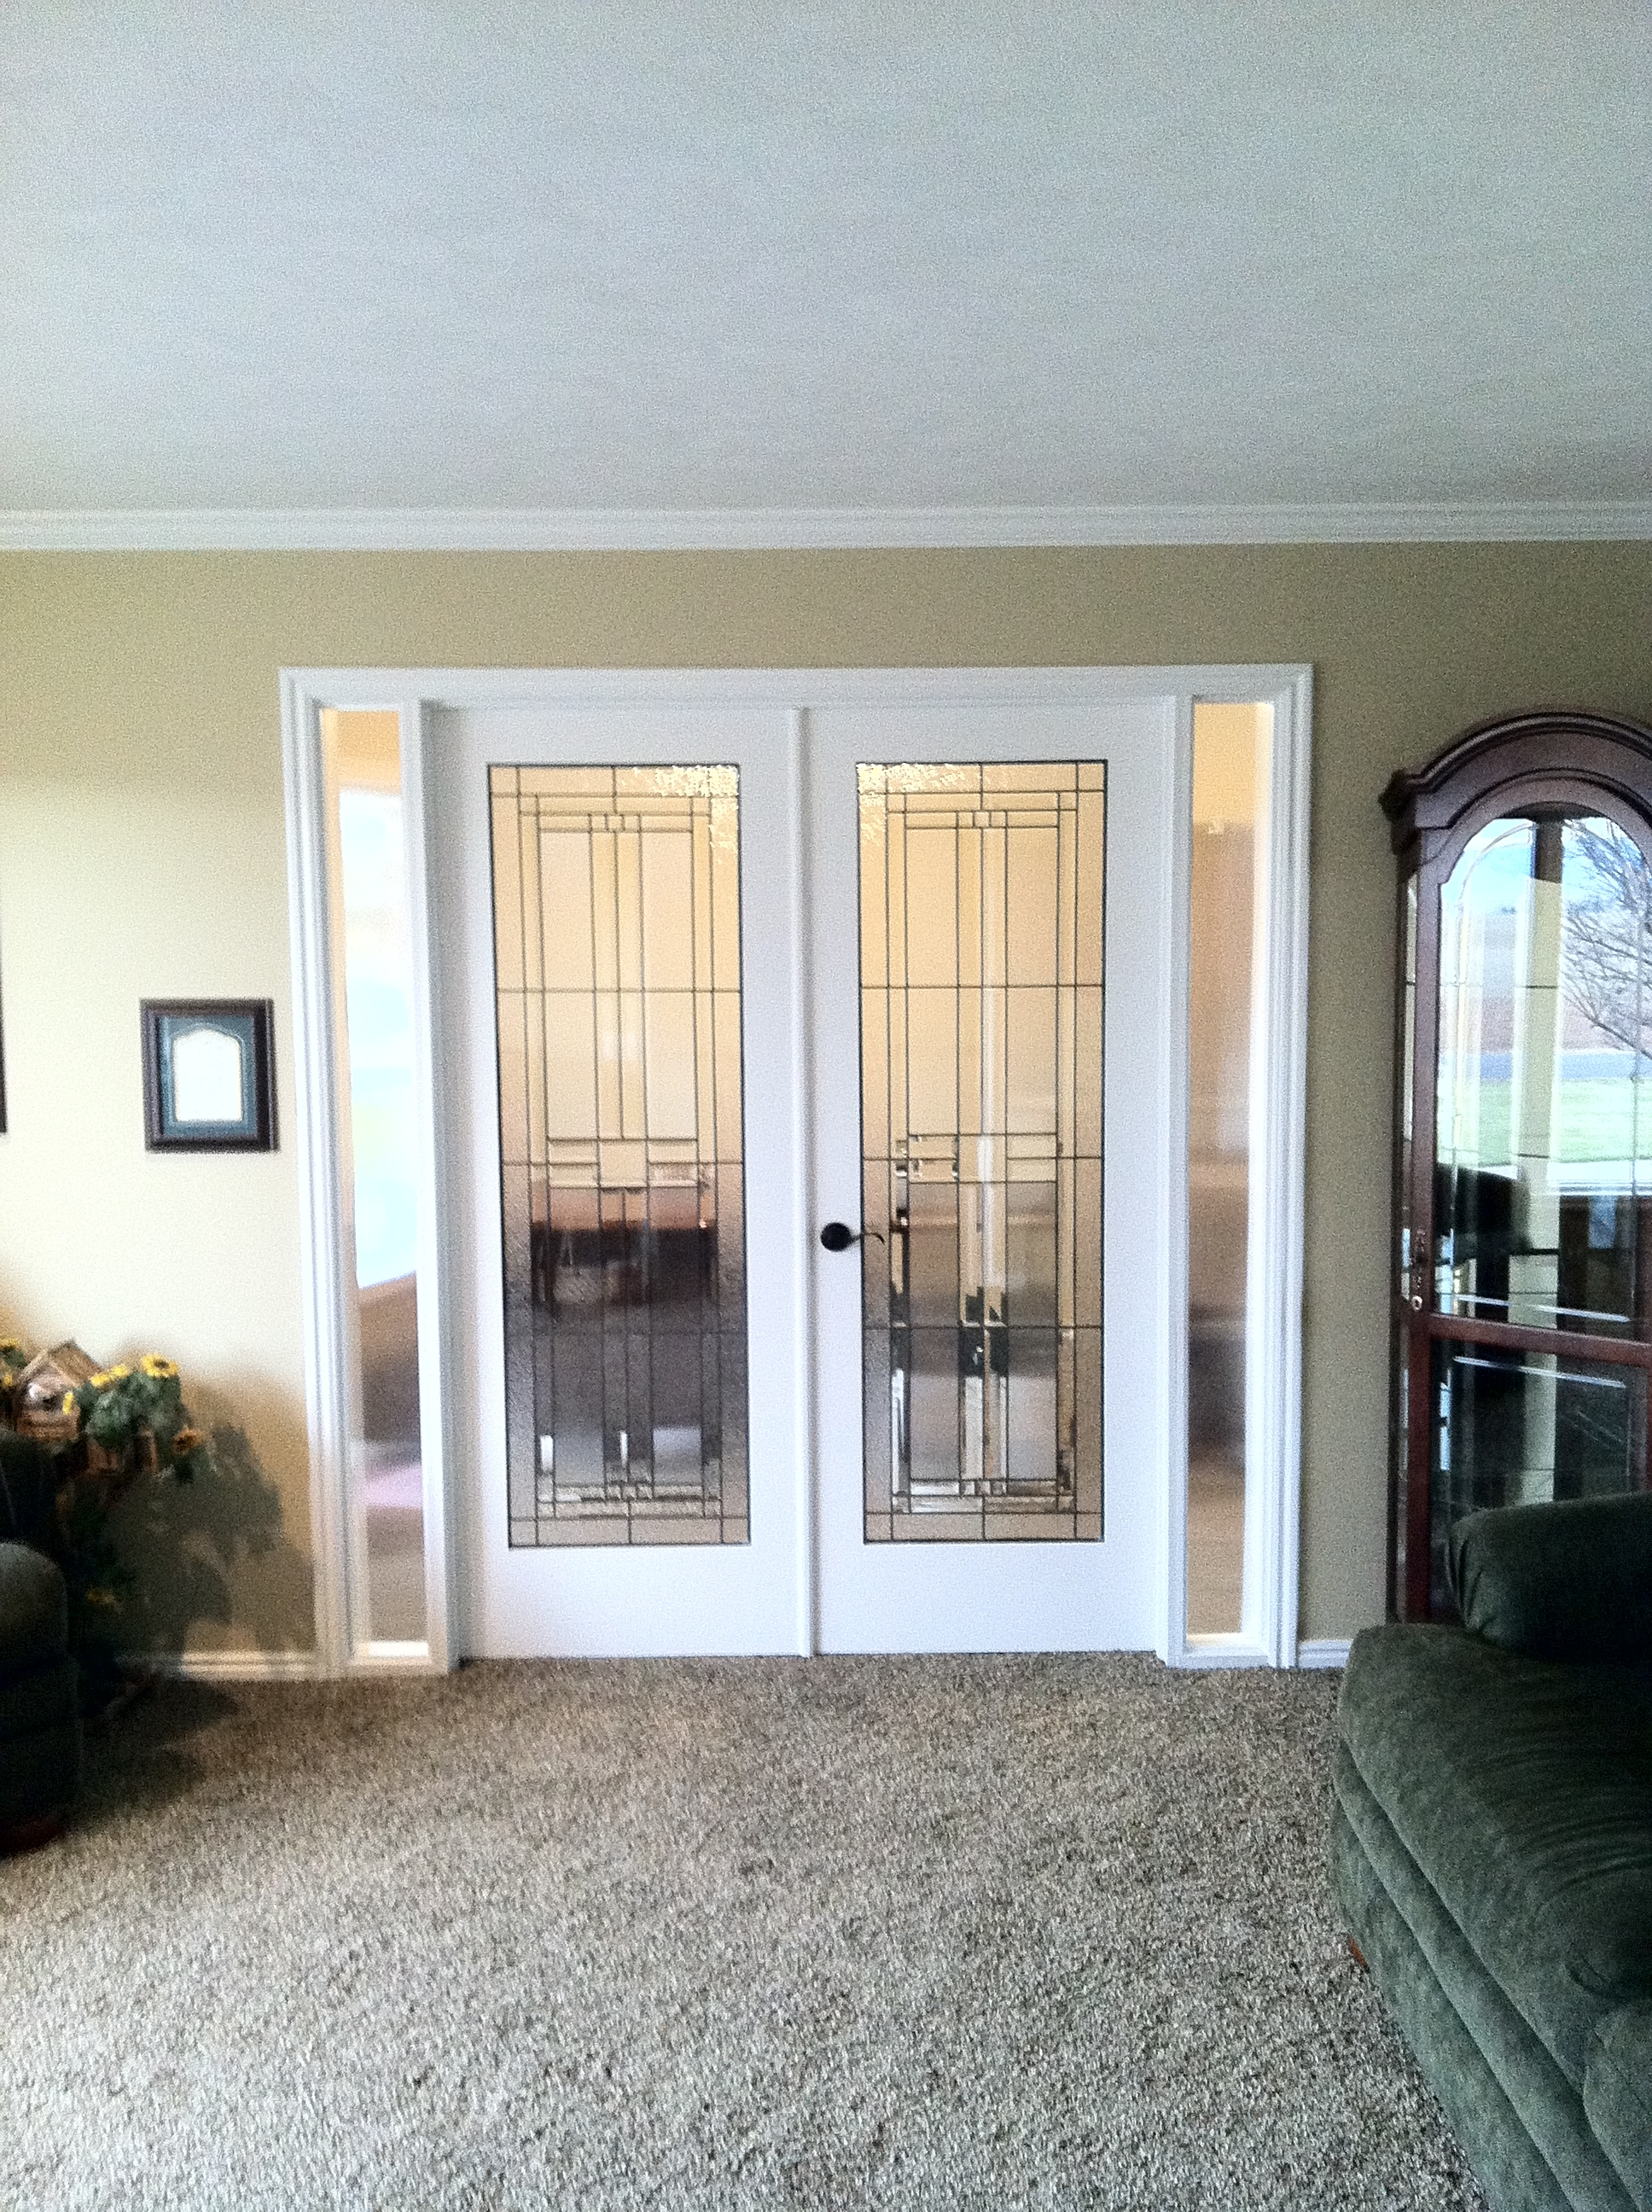 Residential, Commercial & Auto Glass, Windows, Skylights, Doors: Twin Falls, Burley, Pocatello, ID